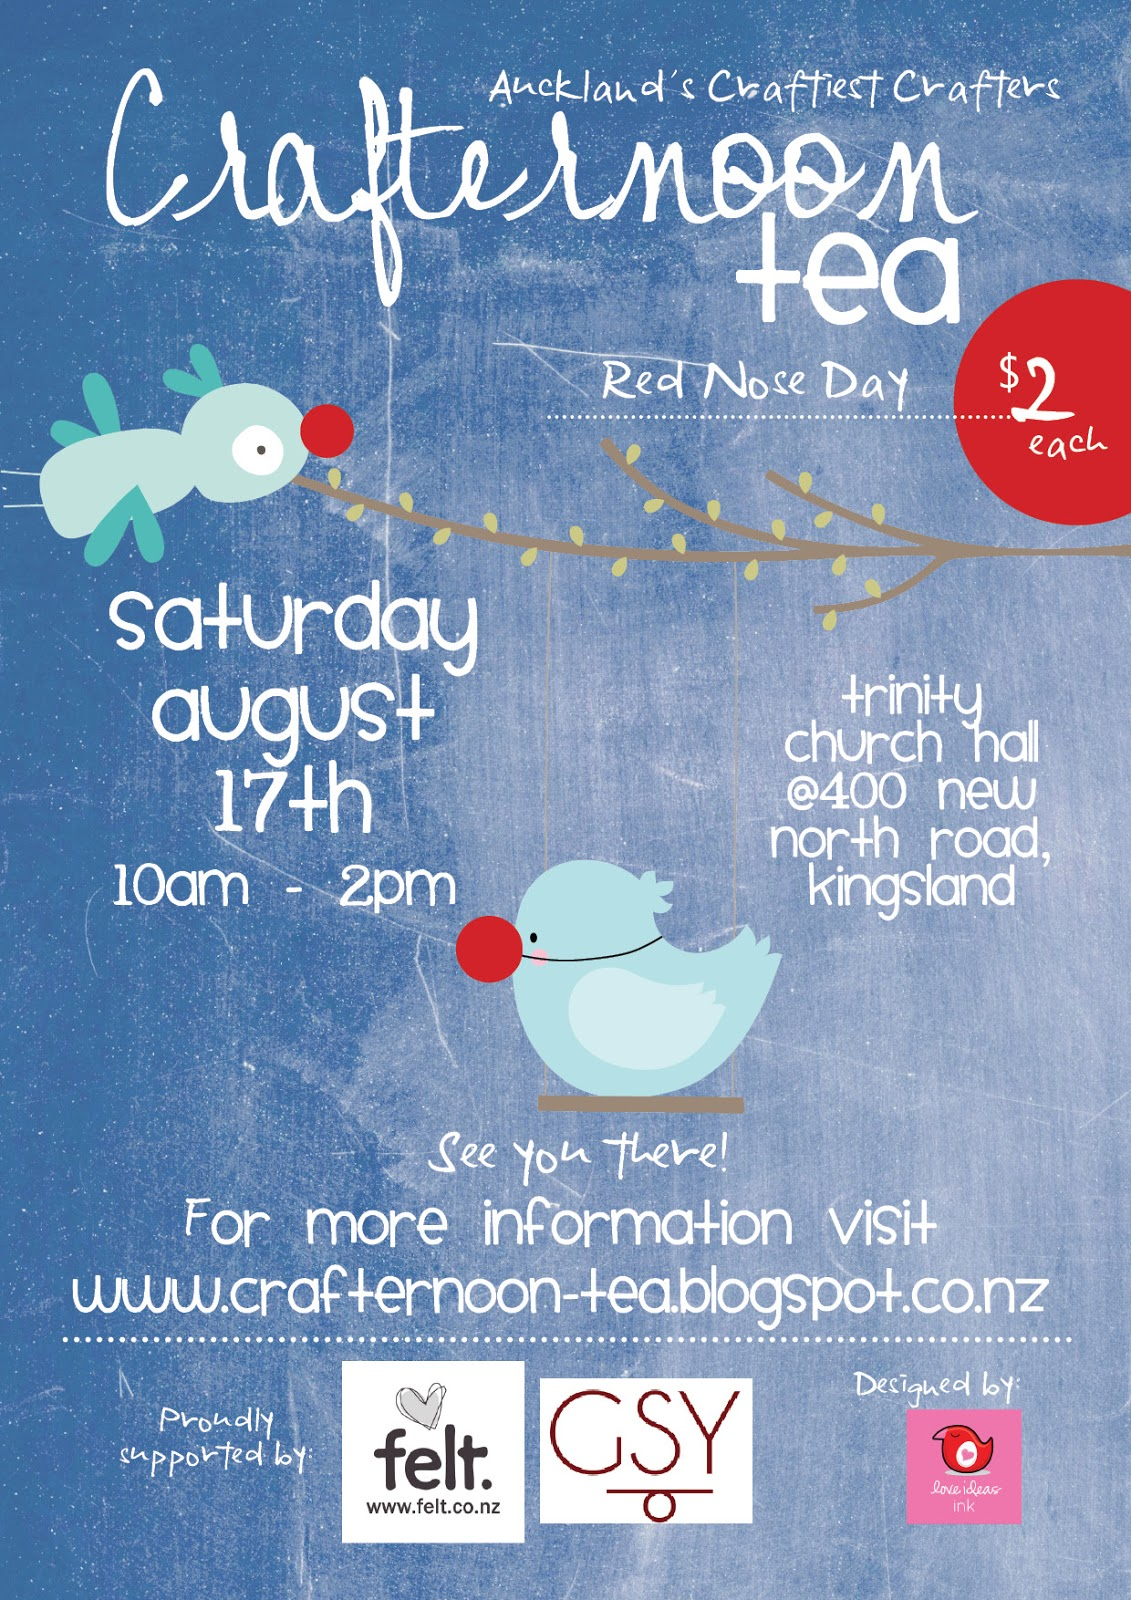 Crafternoon Tea: What a cute flyer we have